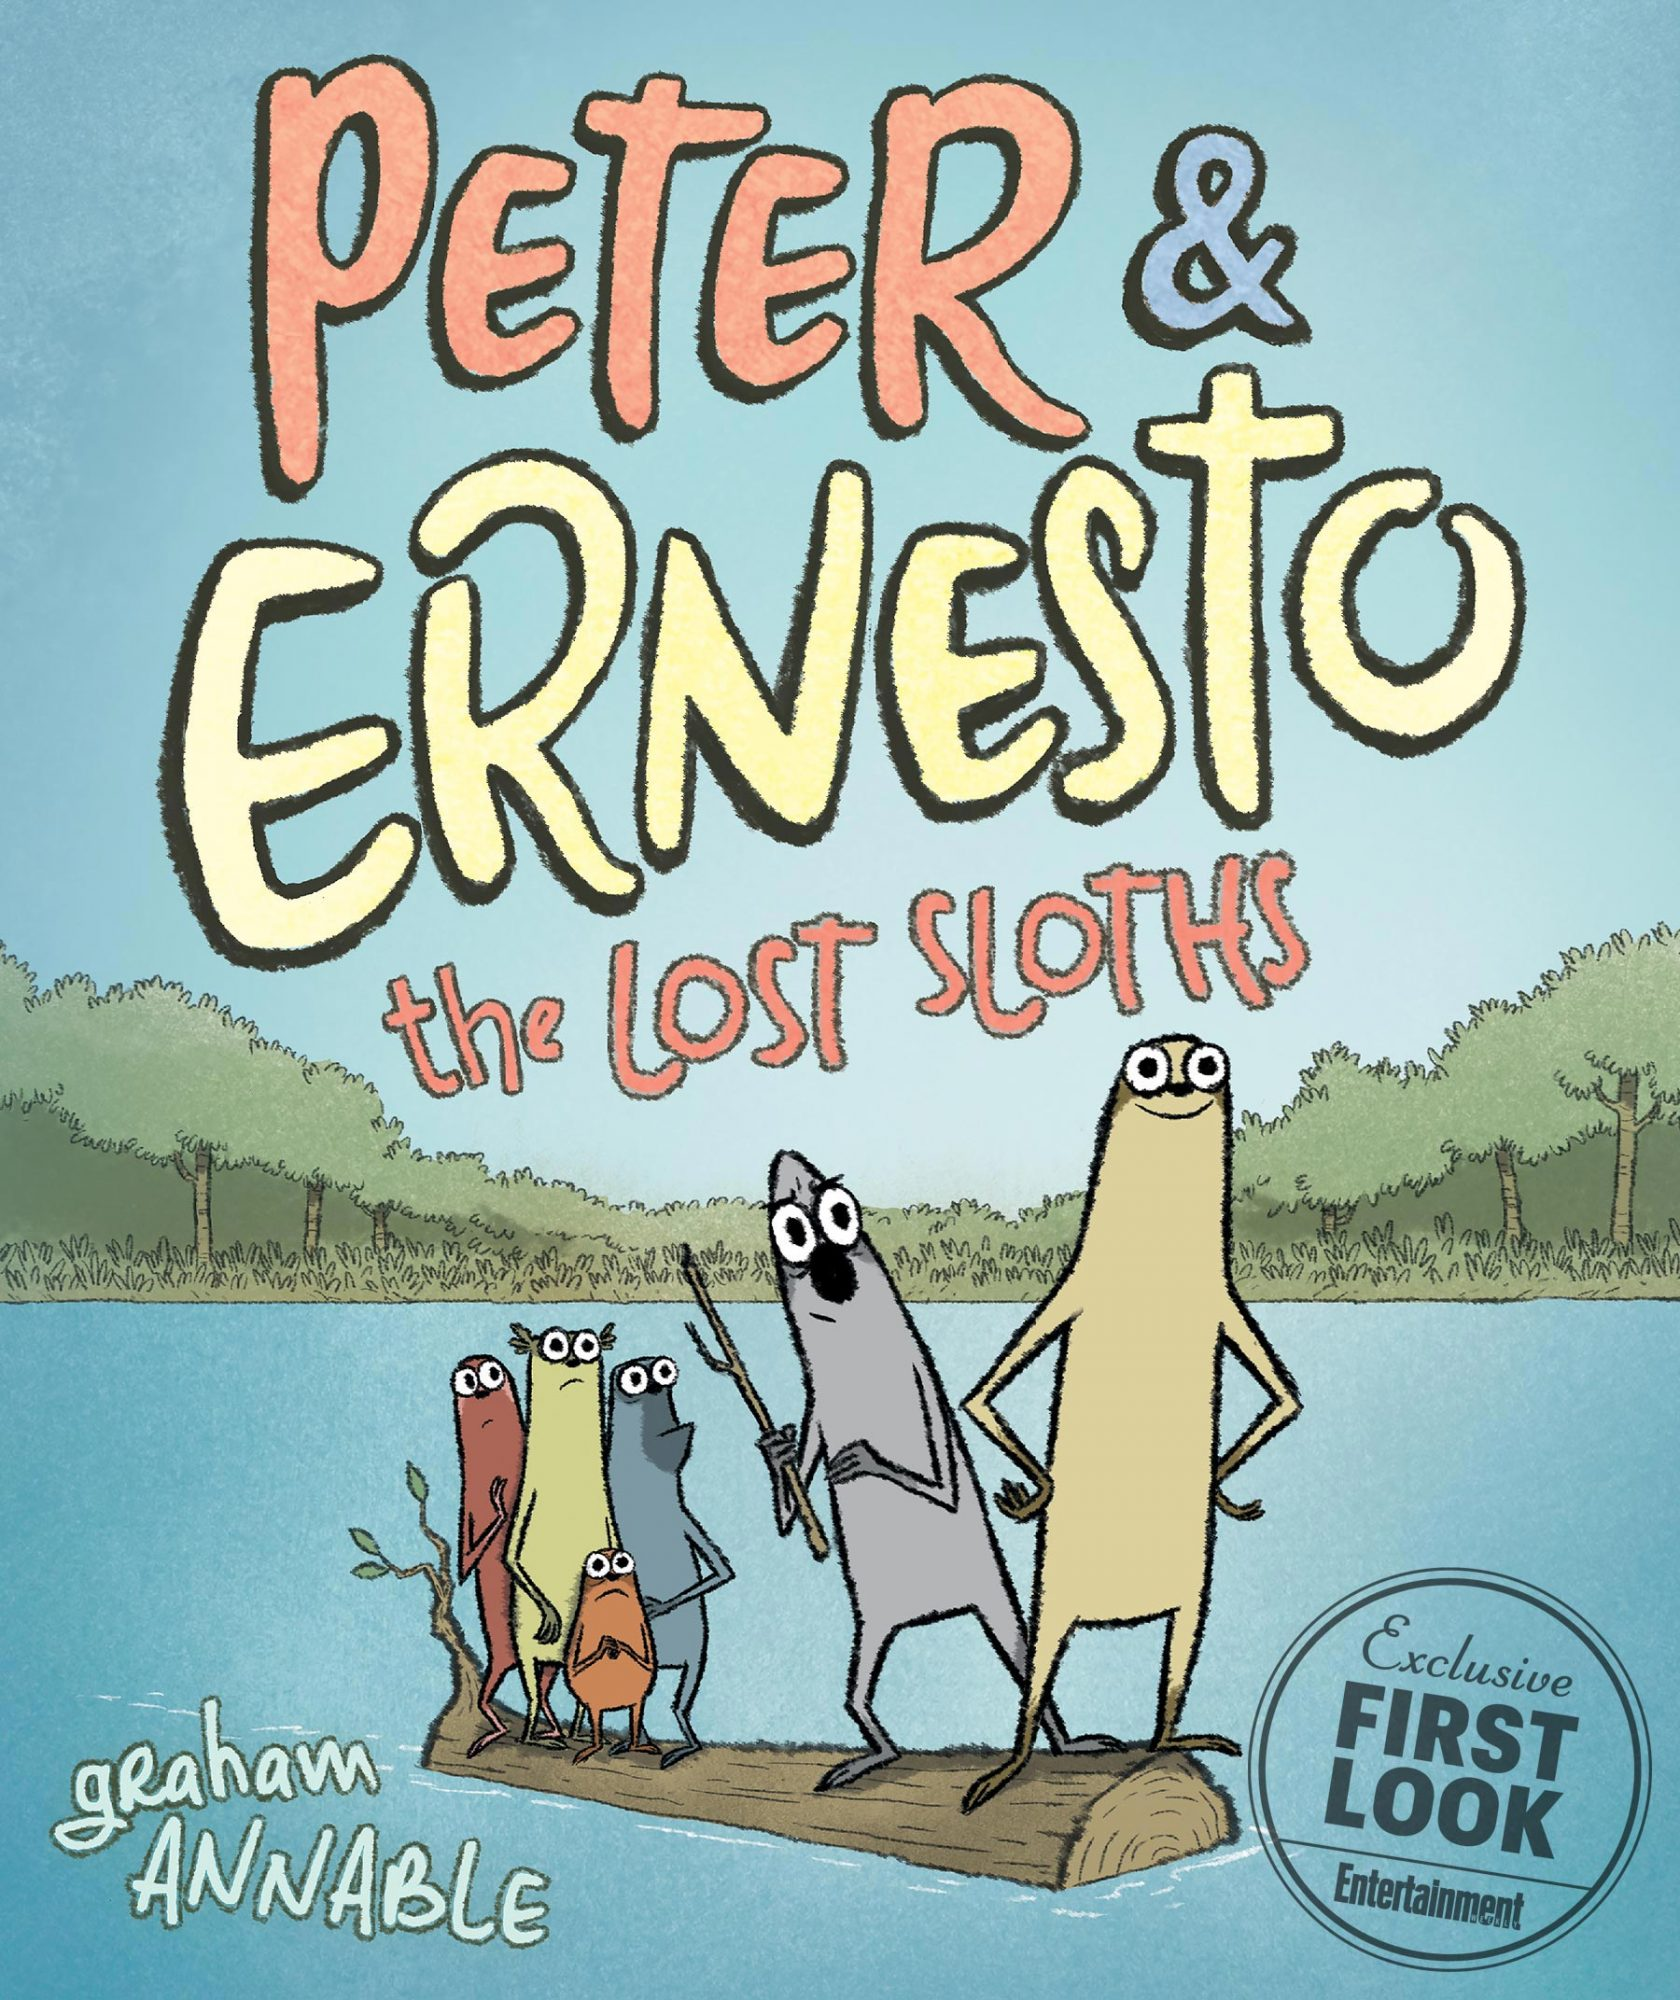 Peter & Ernesto: The Lost Sloths by Graham Annable (April 9)